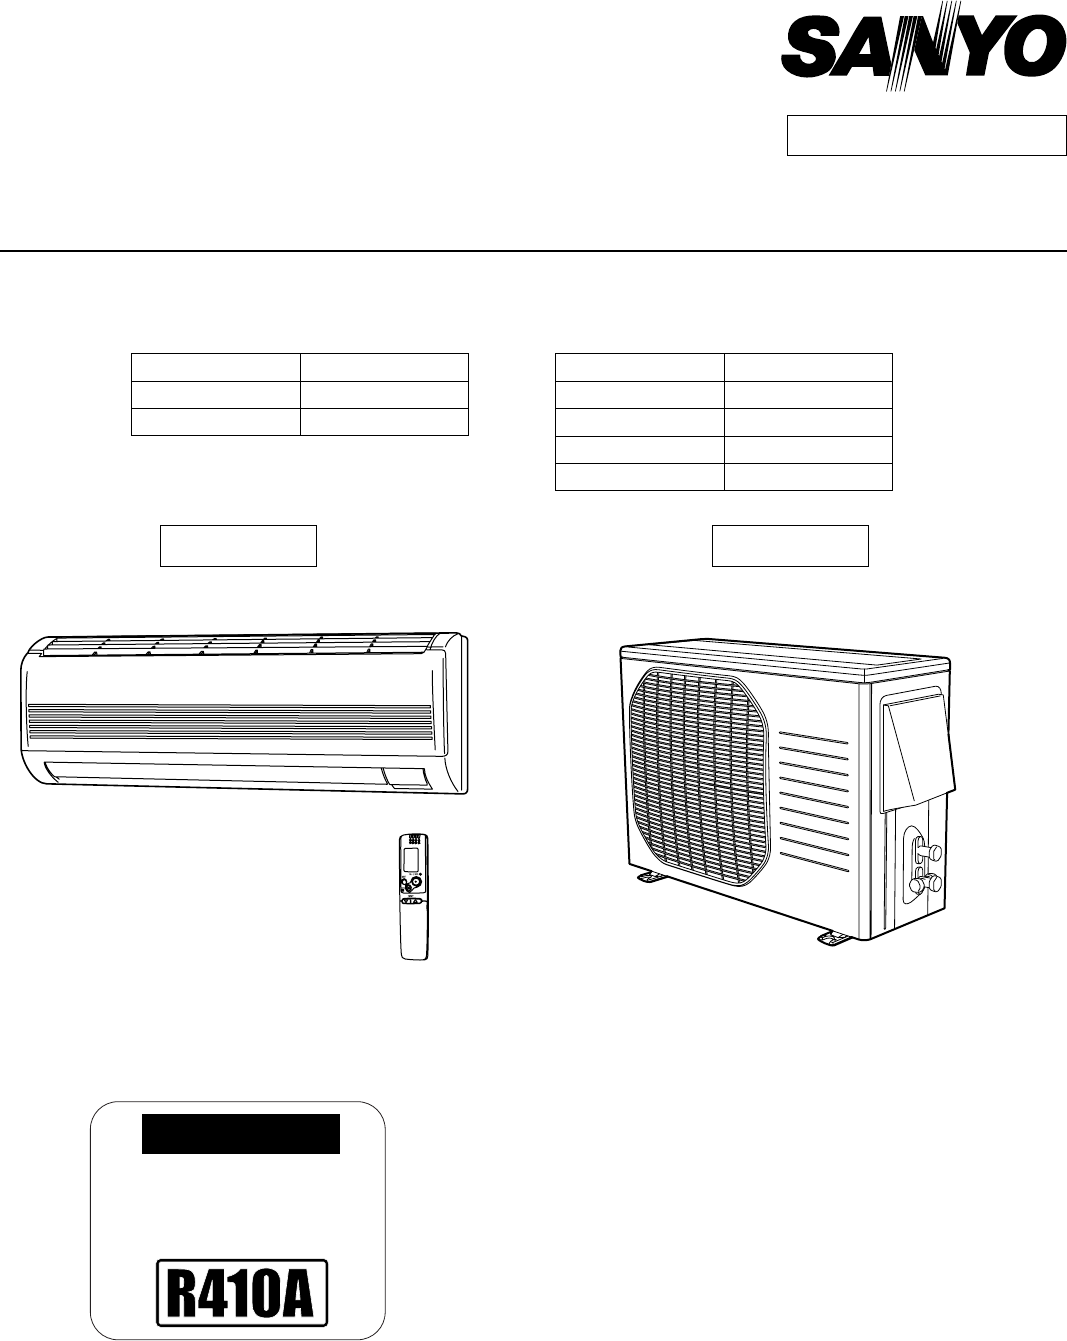 #0C0C0C Sanyo Ion Inverter Air Conditioner Submited Images. Most Recent 12720 Ion Air Conditioner image with 1067x1341 px on helpvideos.info - Air Conditioners, Air Coolers and more